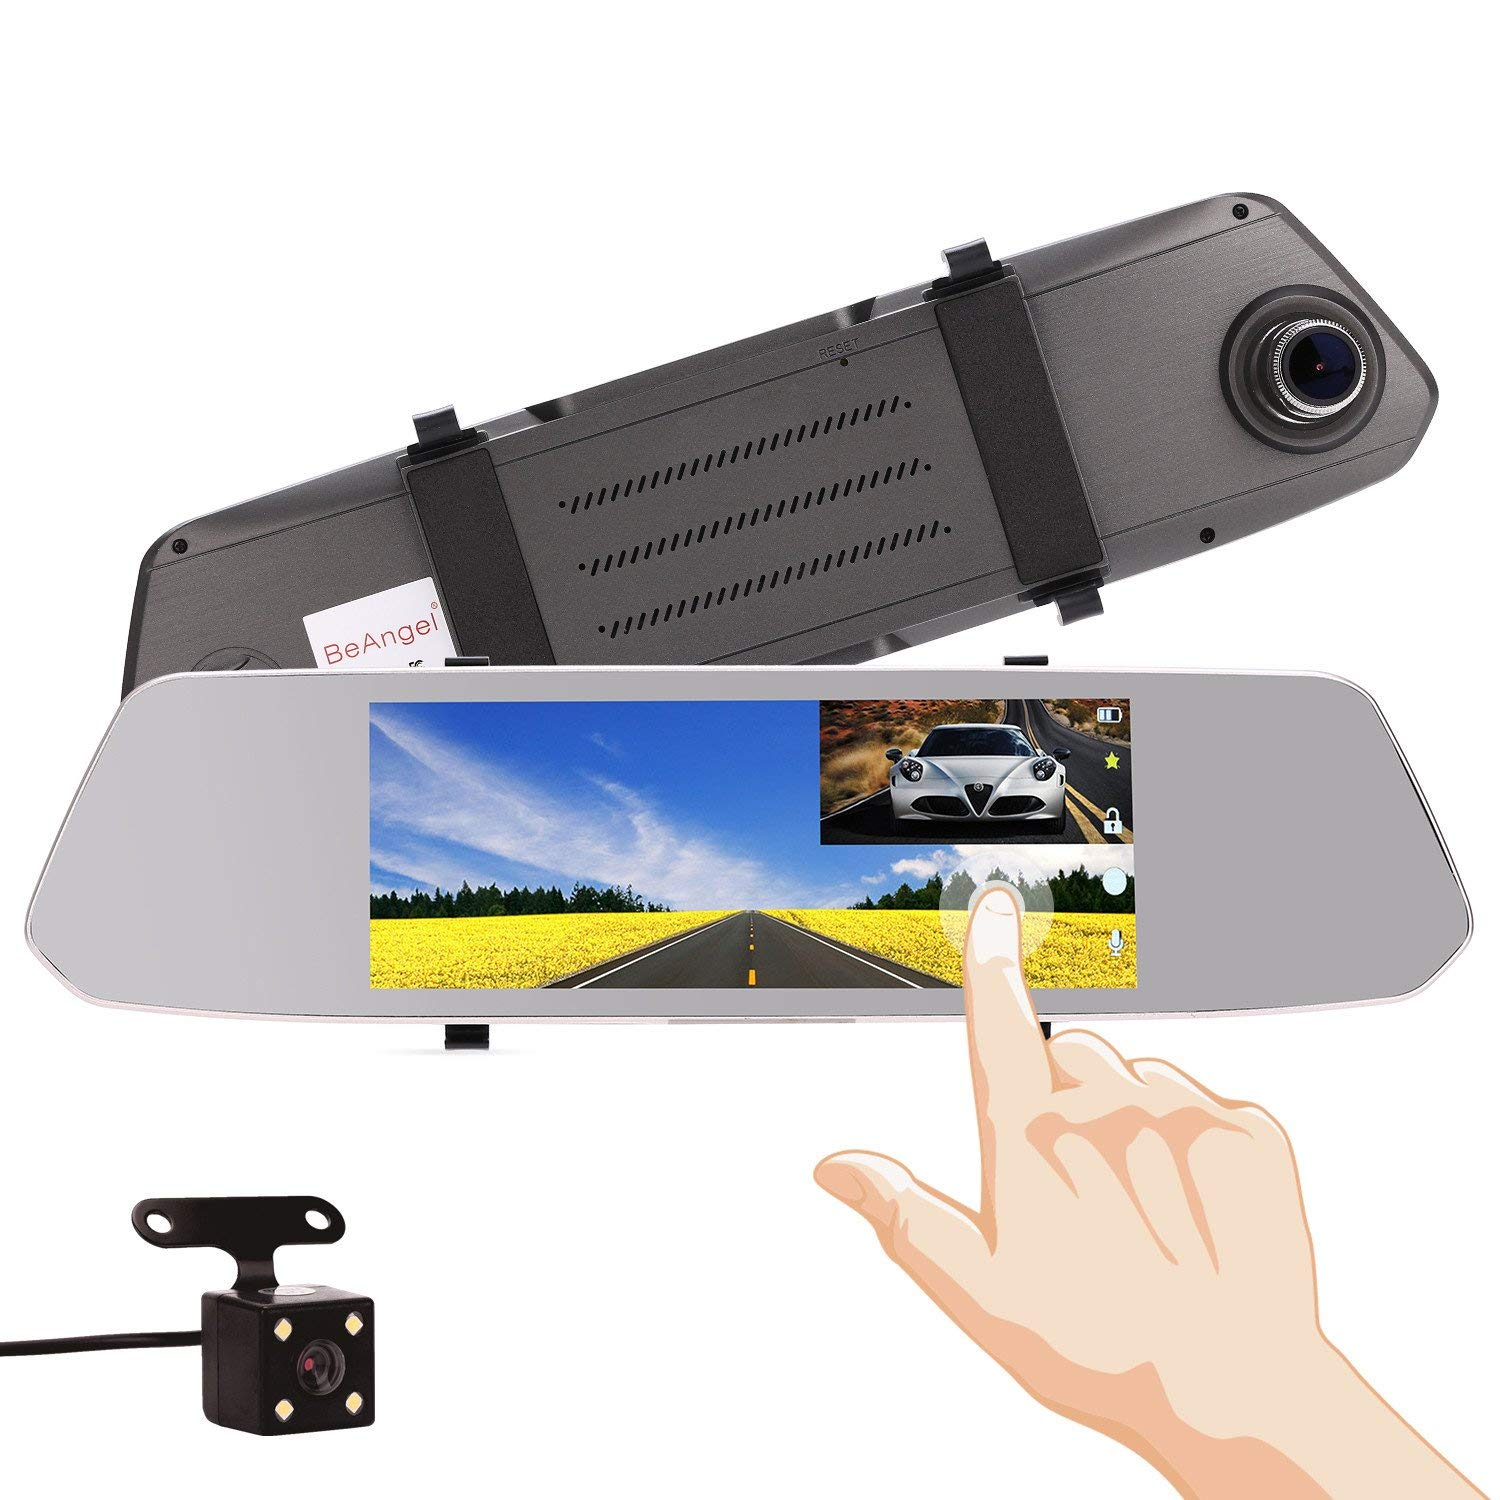 Car & Truck Parts 4-way Video Car Switch Parking Camera 4 View Image Split-screen Control Box Kits Elegant In Style Parts & Accessories